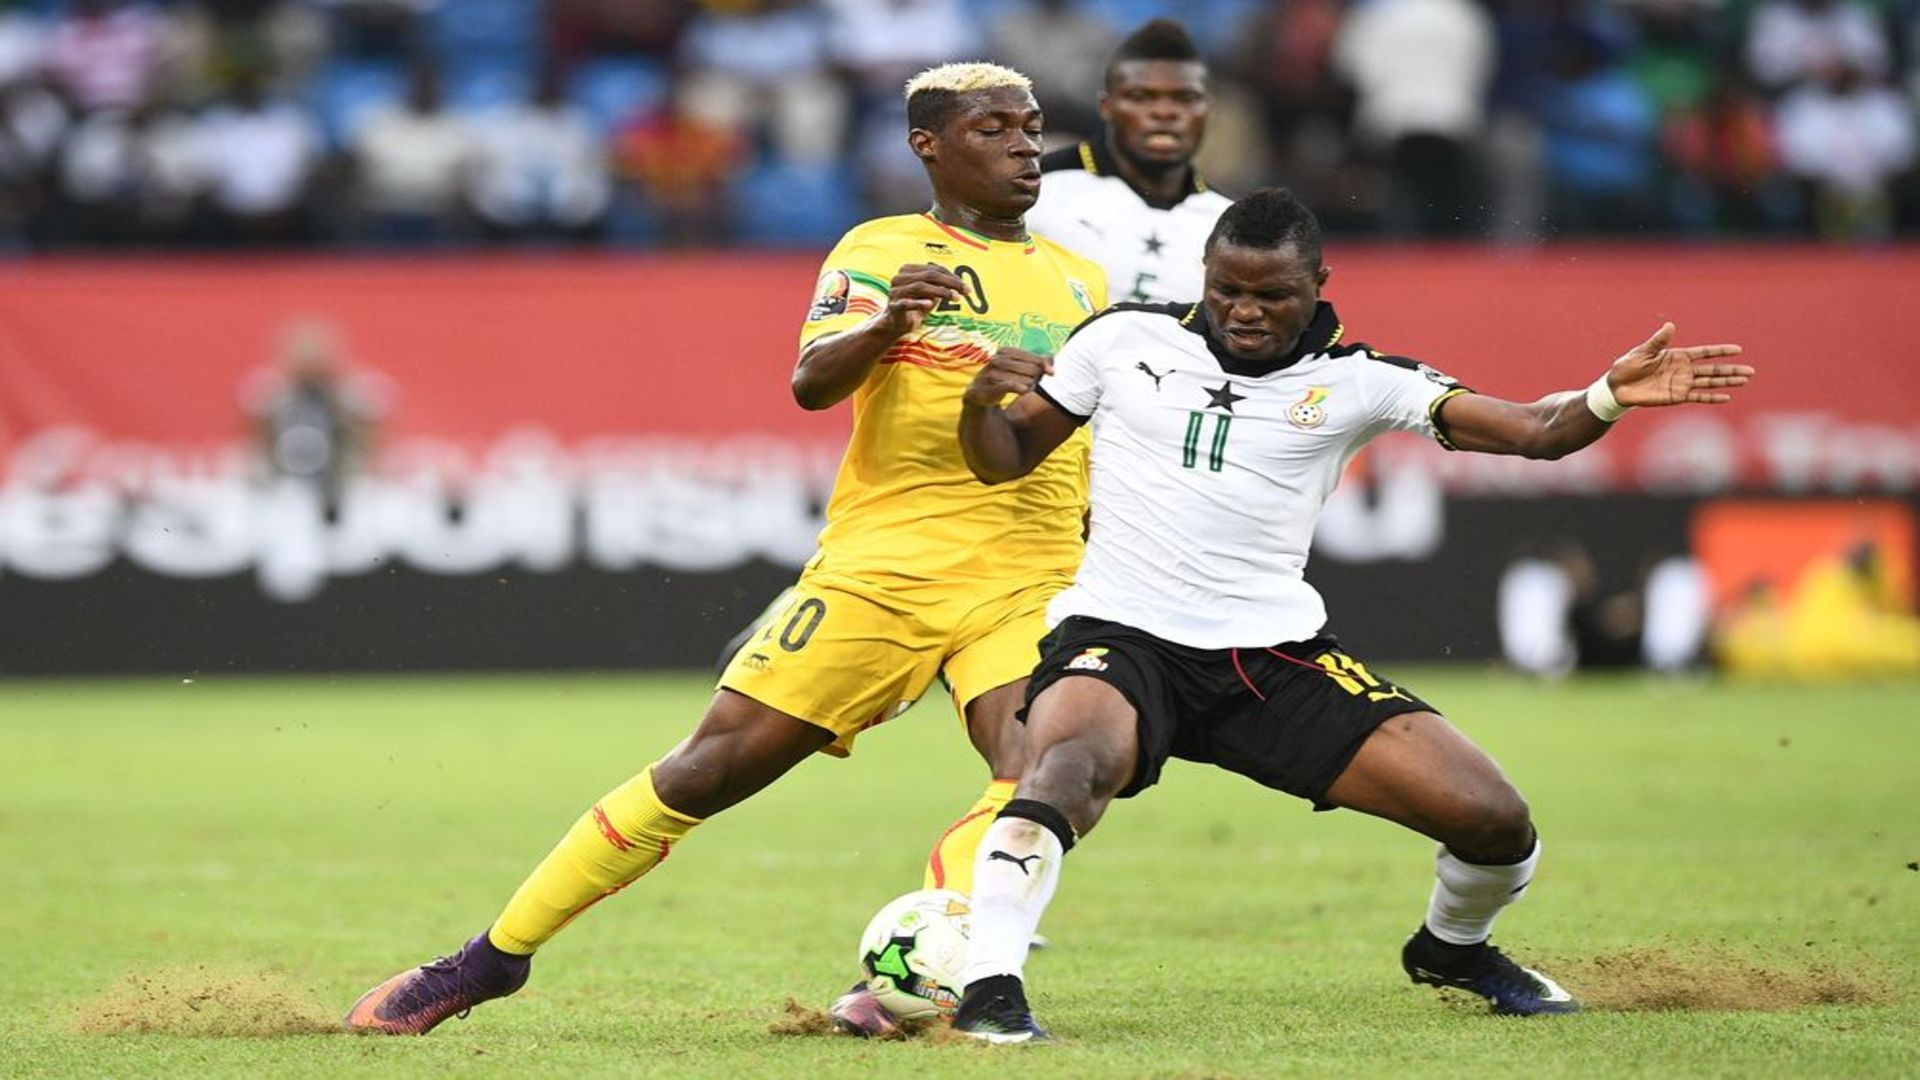 mali 2  06  17 africa cup of